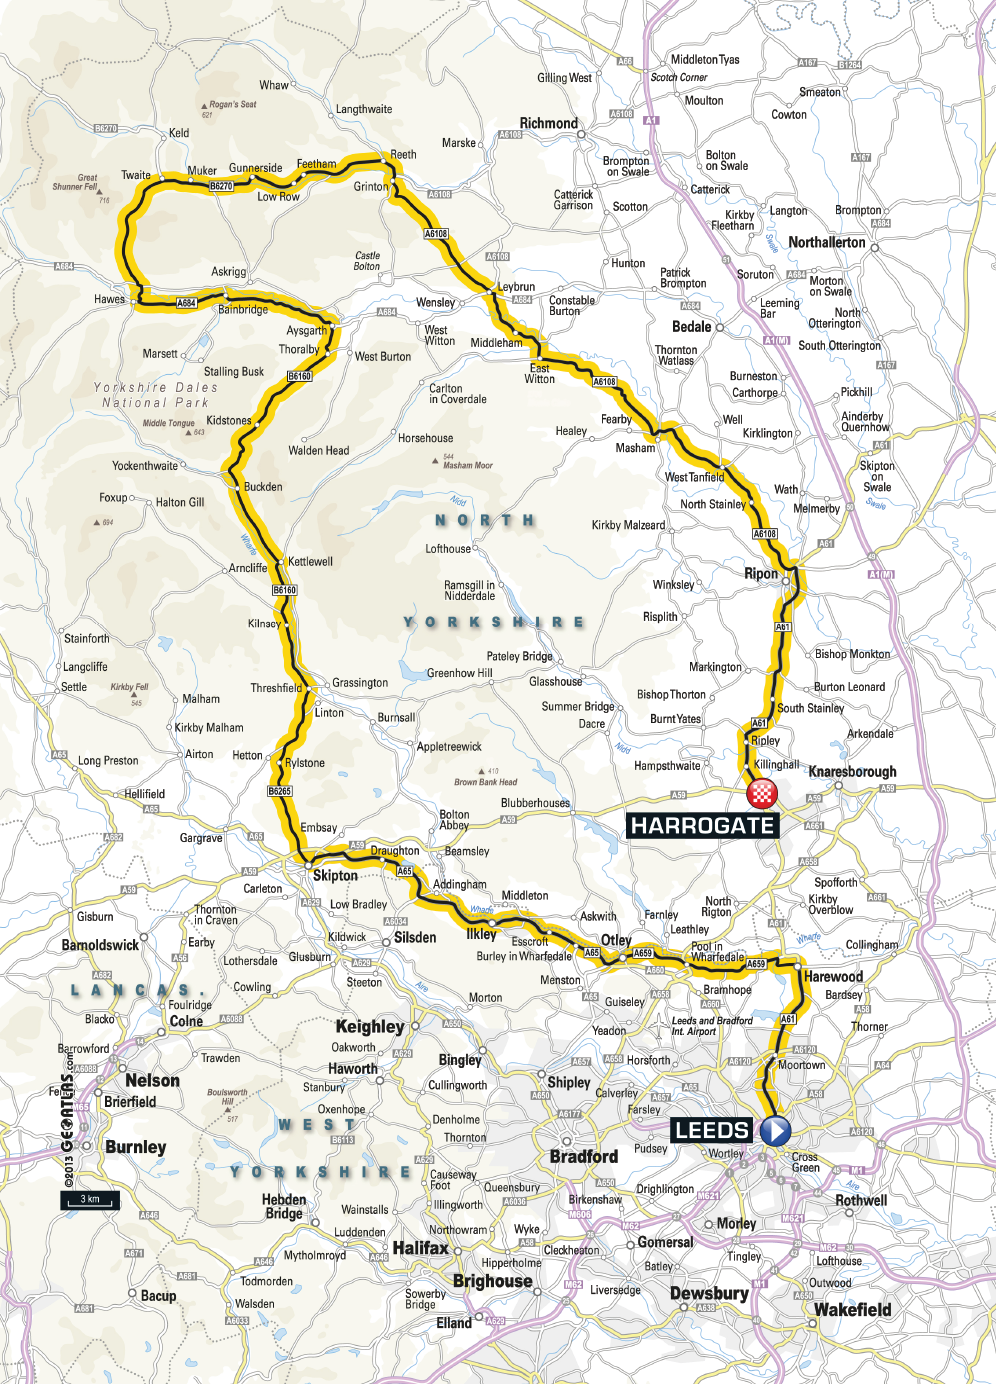 Tour de France 2014 Stage 1 Route Map